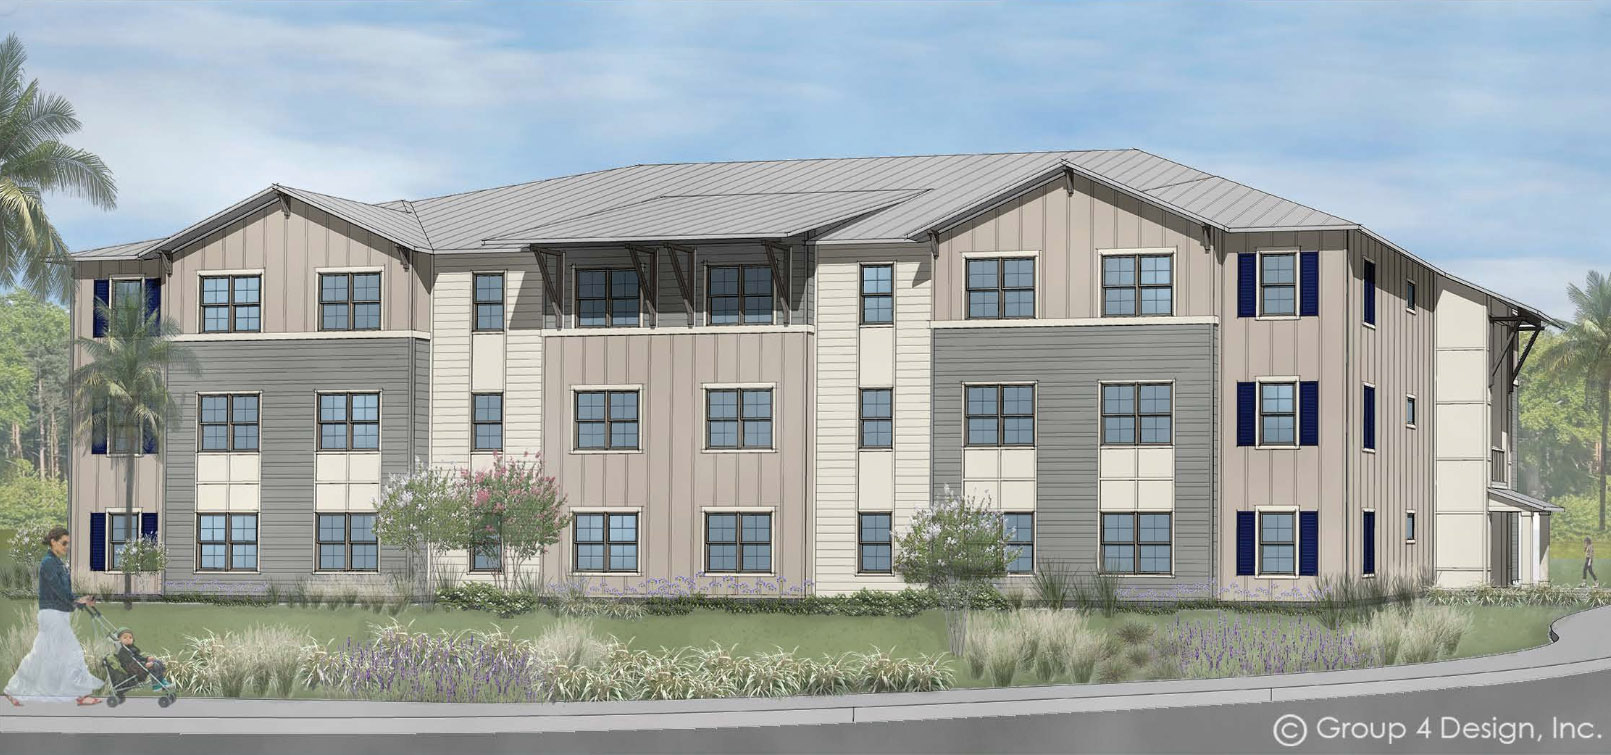 Rendering of Macie Creek Multifamily Affordable Workforce Housing by Summit Contracting Group